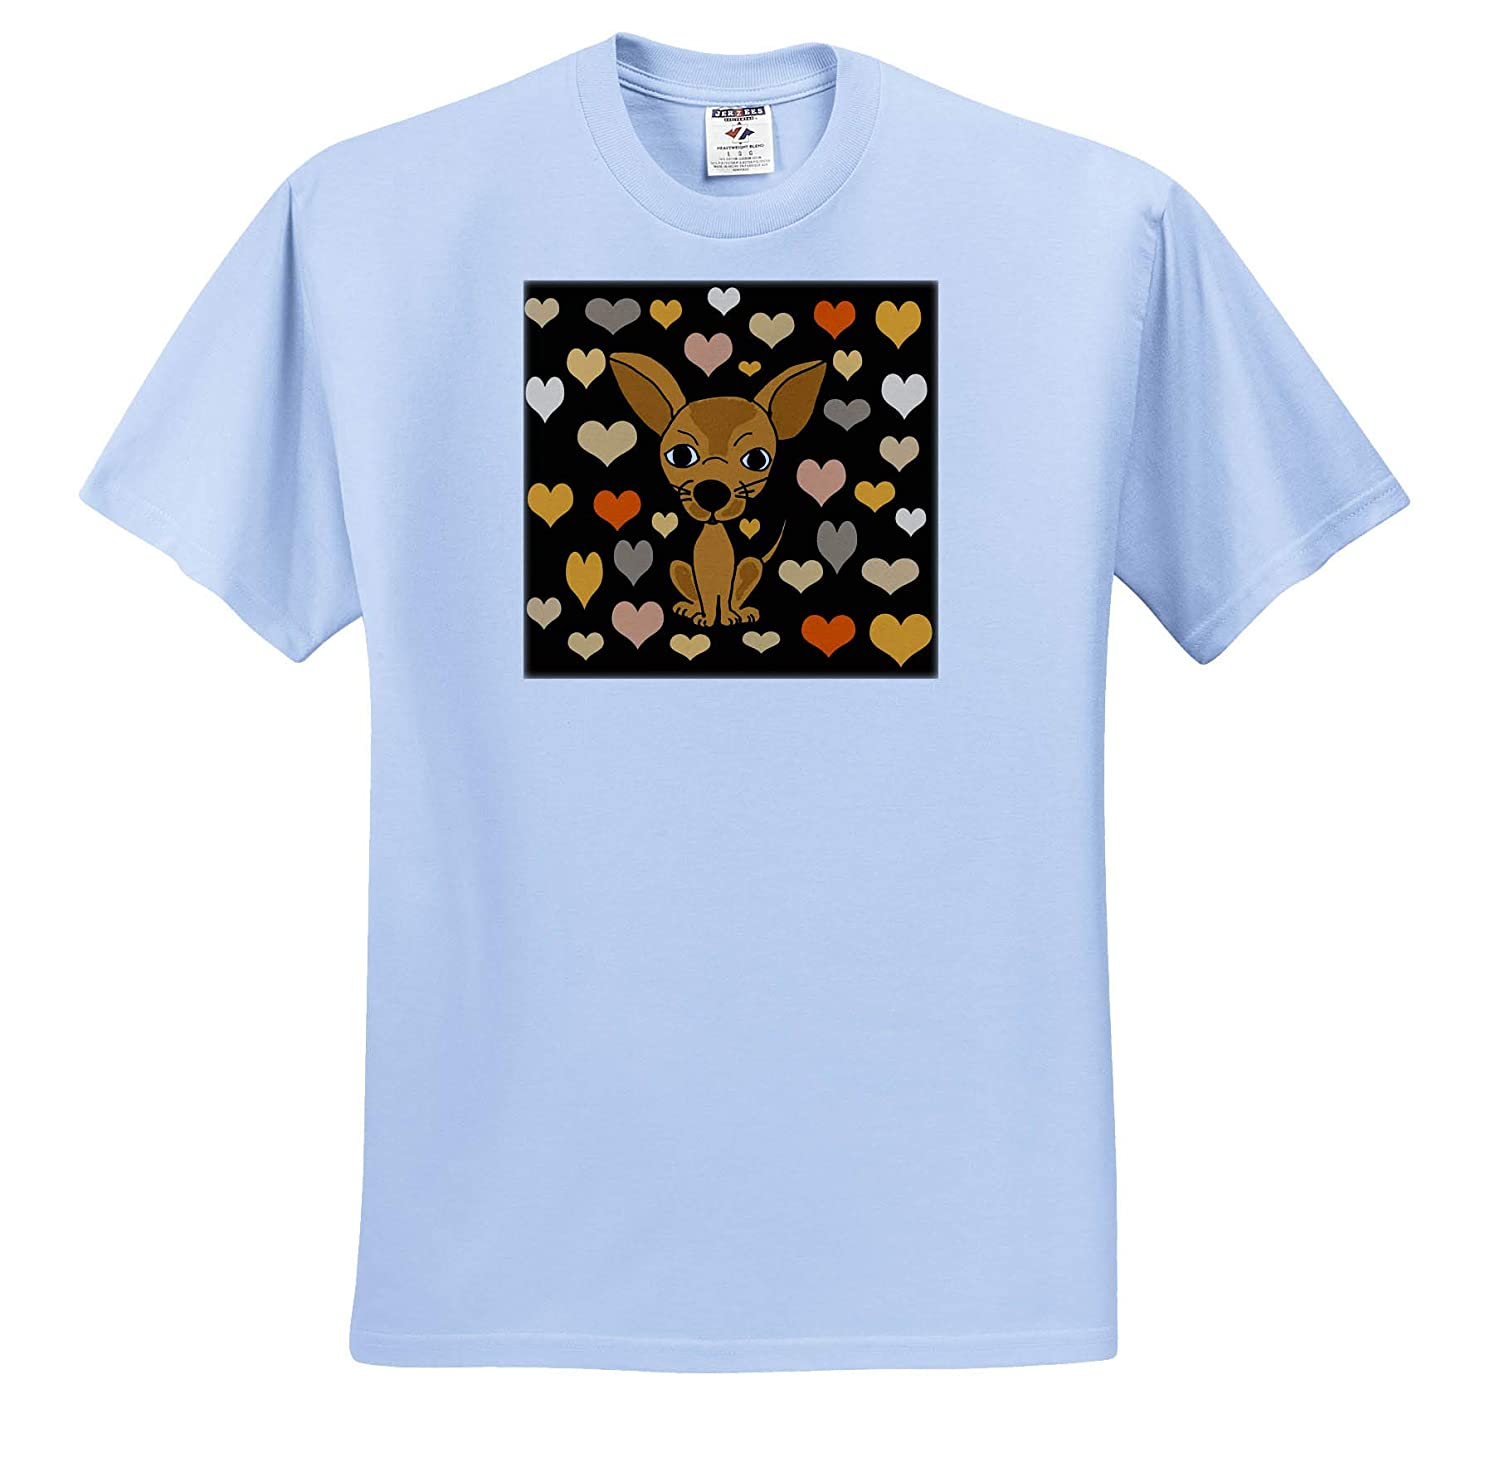 3dRose All Smiles Art T-Shirts Pets Funny Cute Chihuahua Dog and Heart Love Pattern Abstract